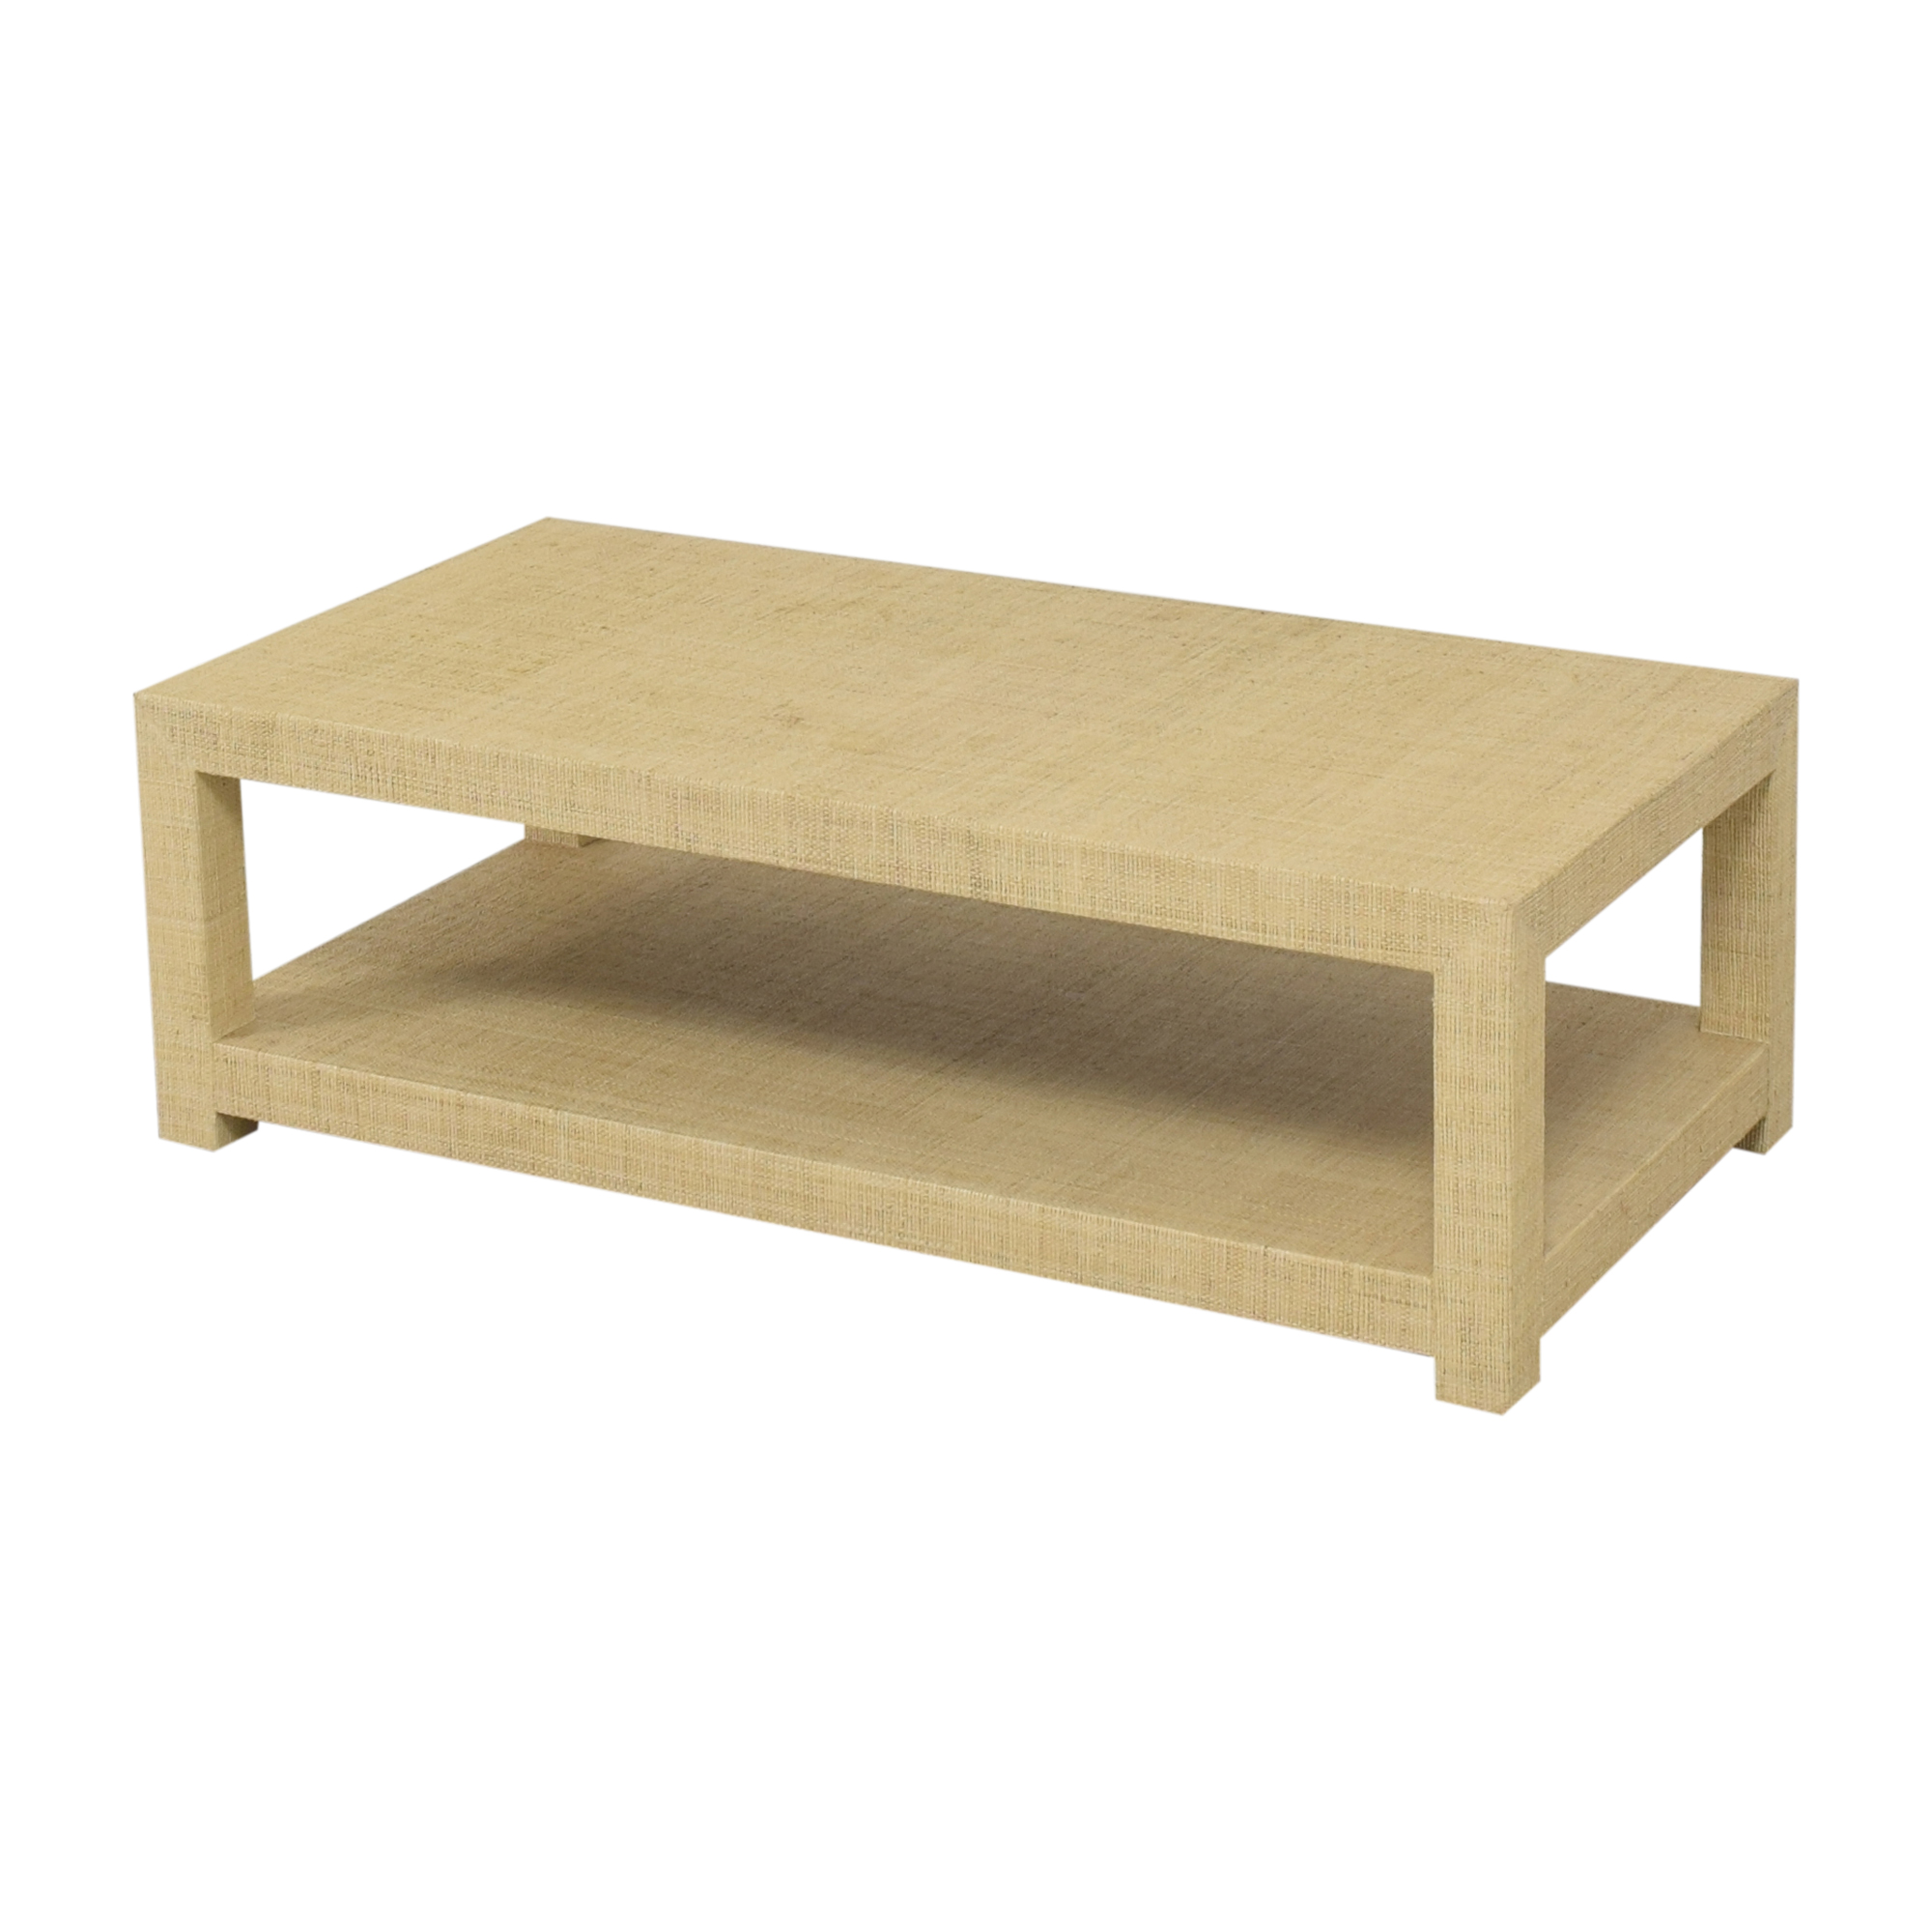 Serena & Lily Blake Rectangular Coffee Table / Coffee Tables